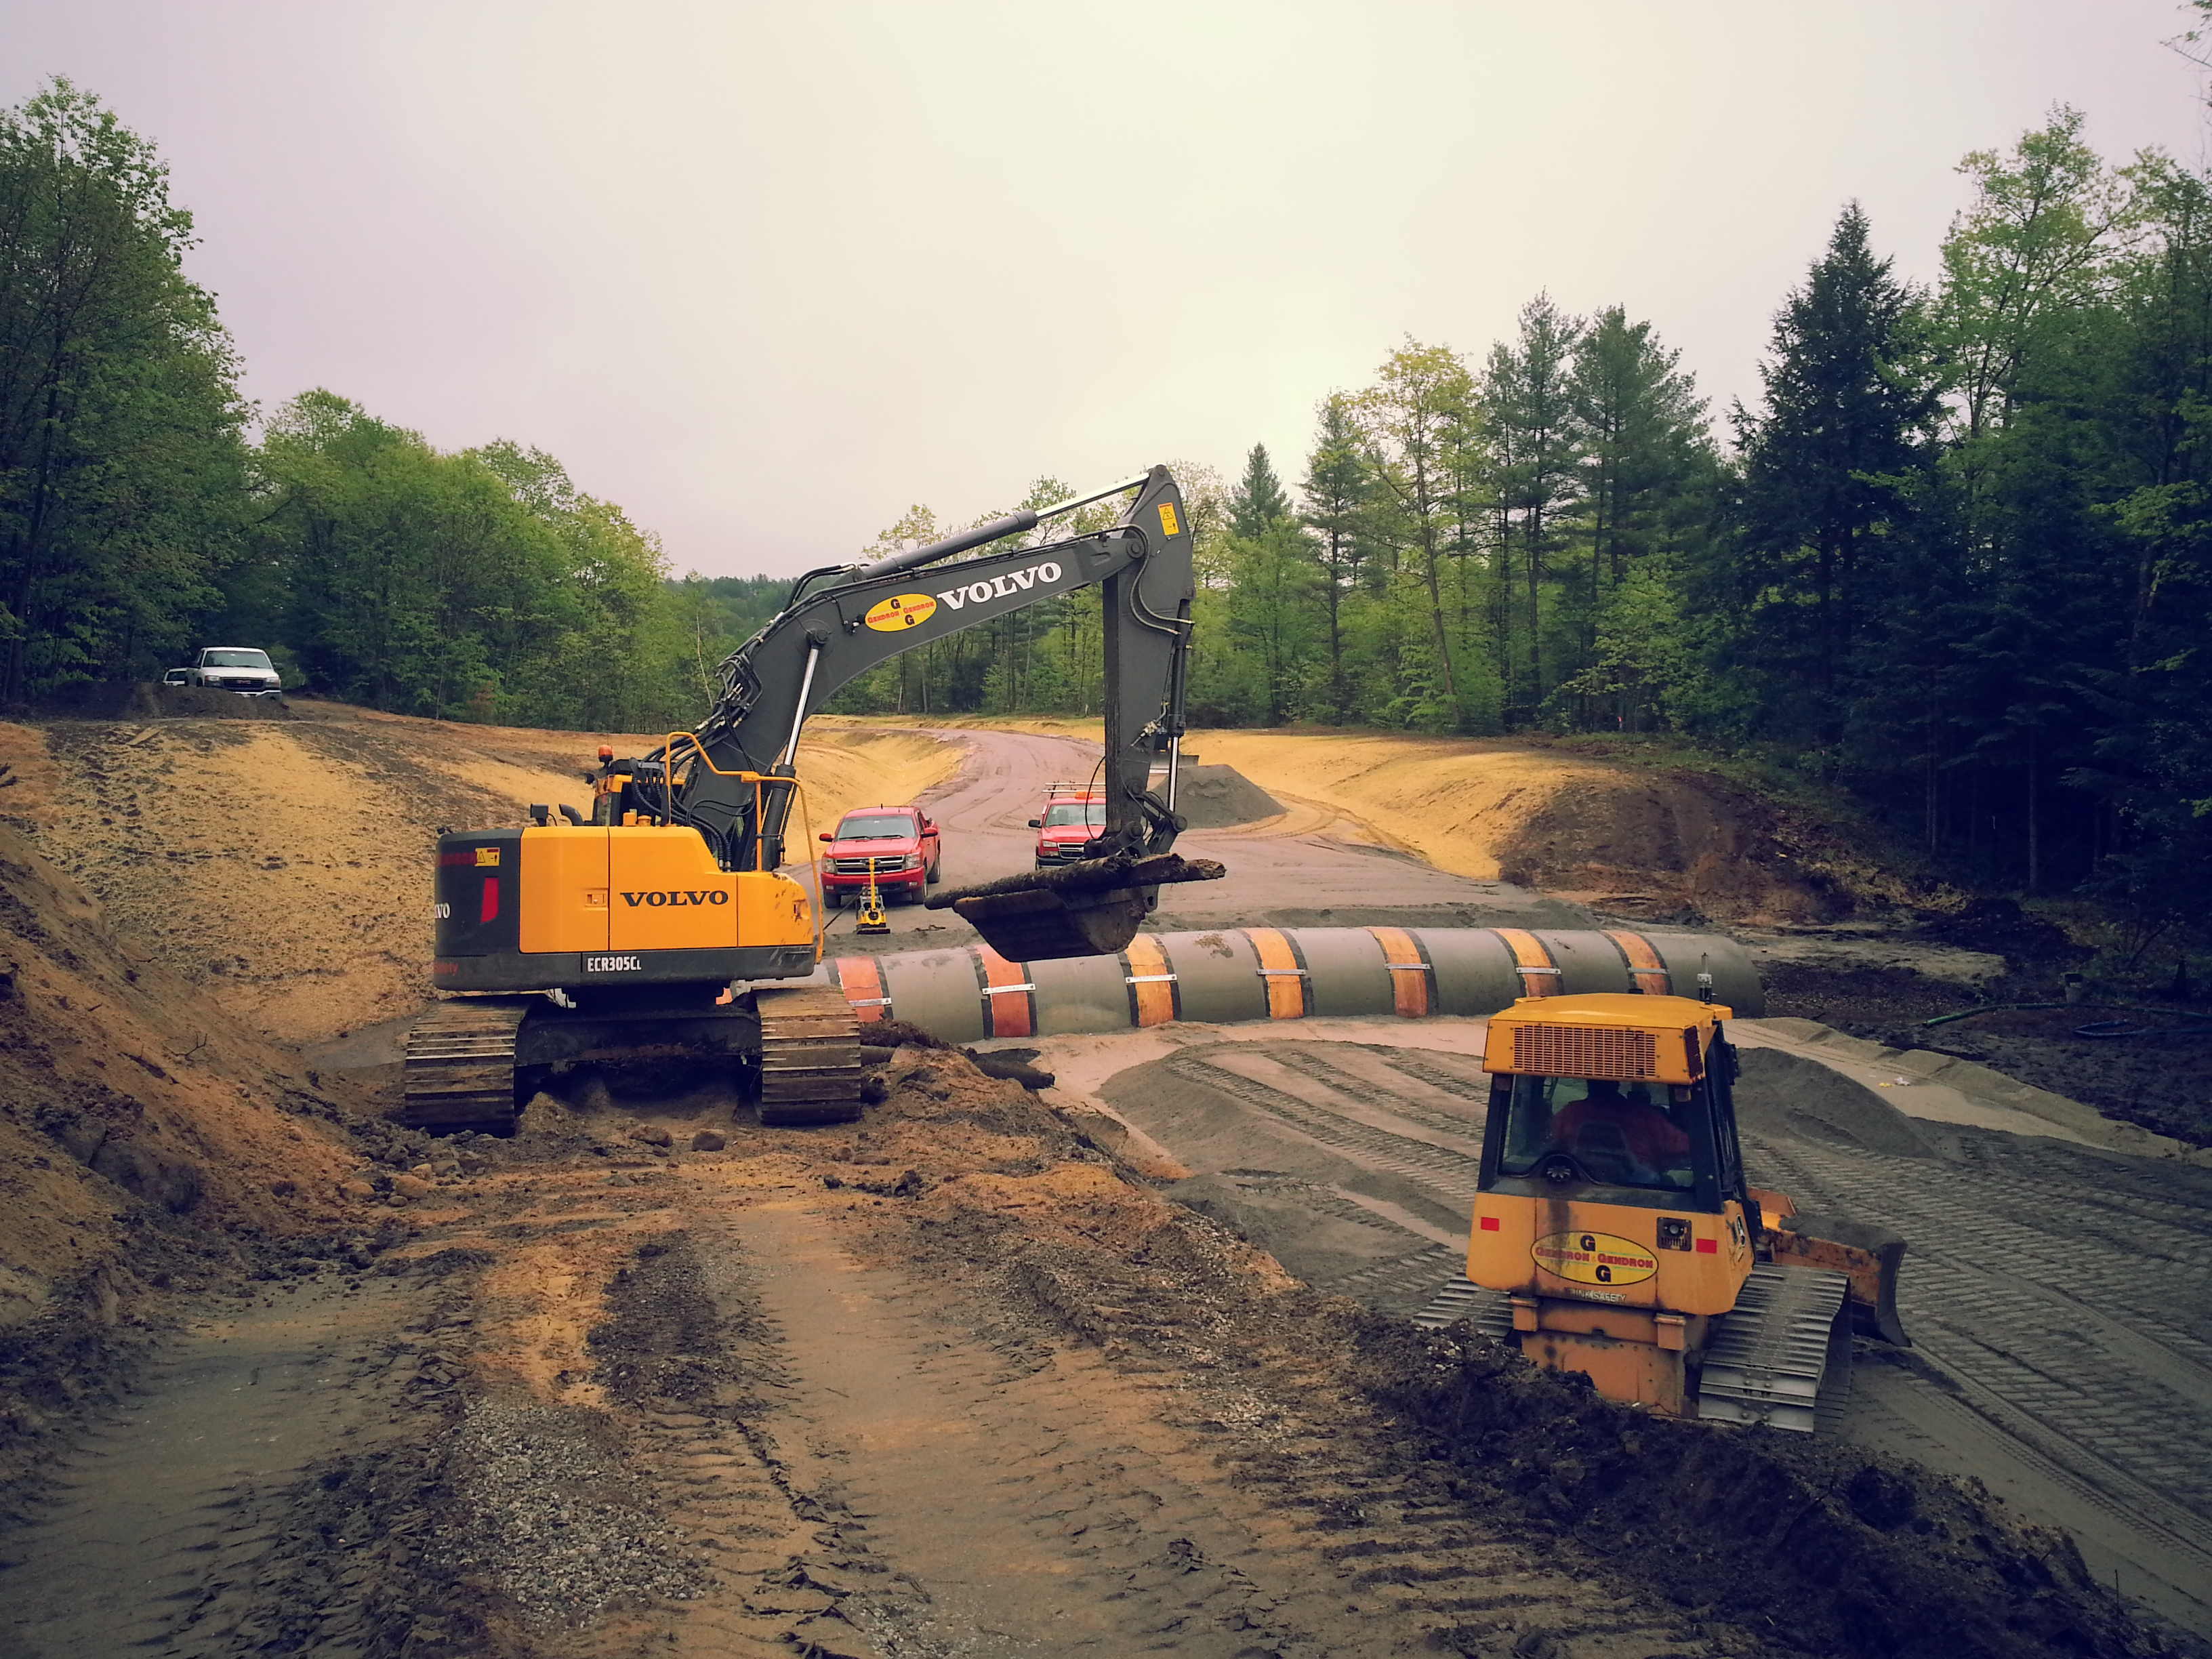 Excavation equipment preparing gravel base in a roadway bed around a recently installed culvert.